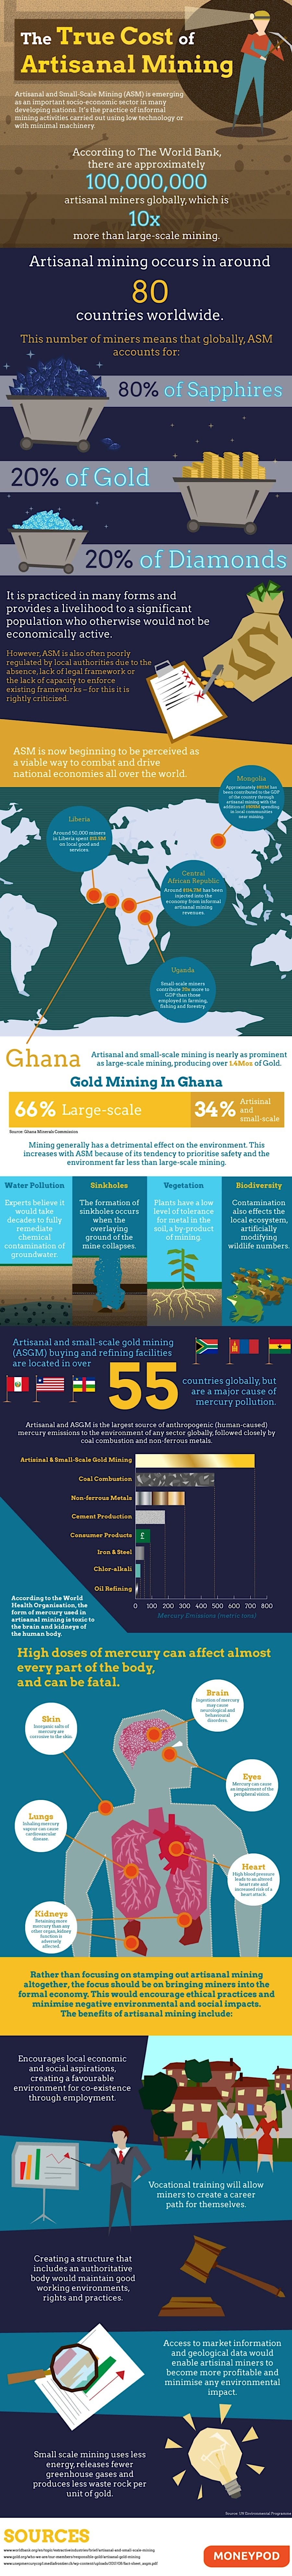 The True Cost of Artisanal Mining #Infographic